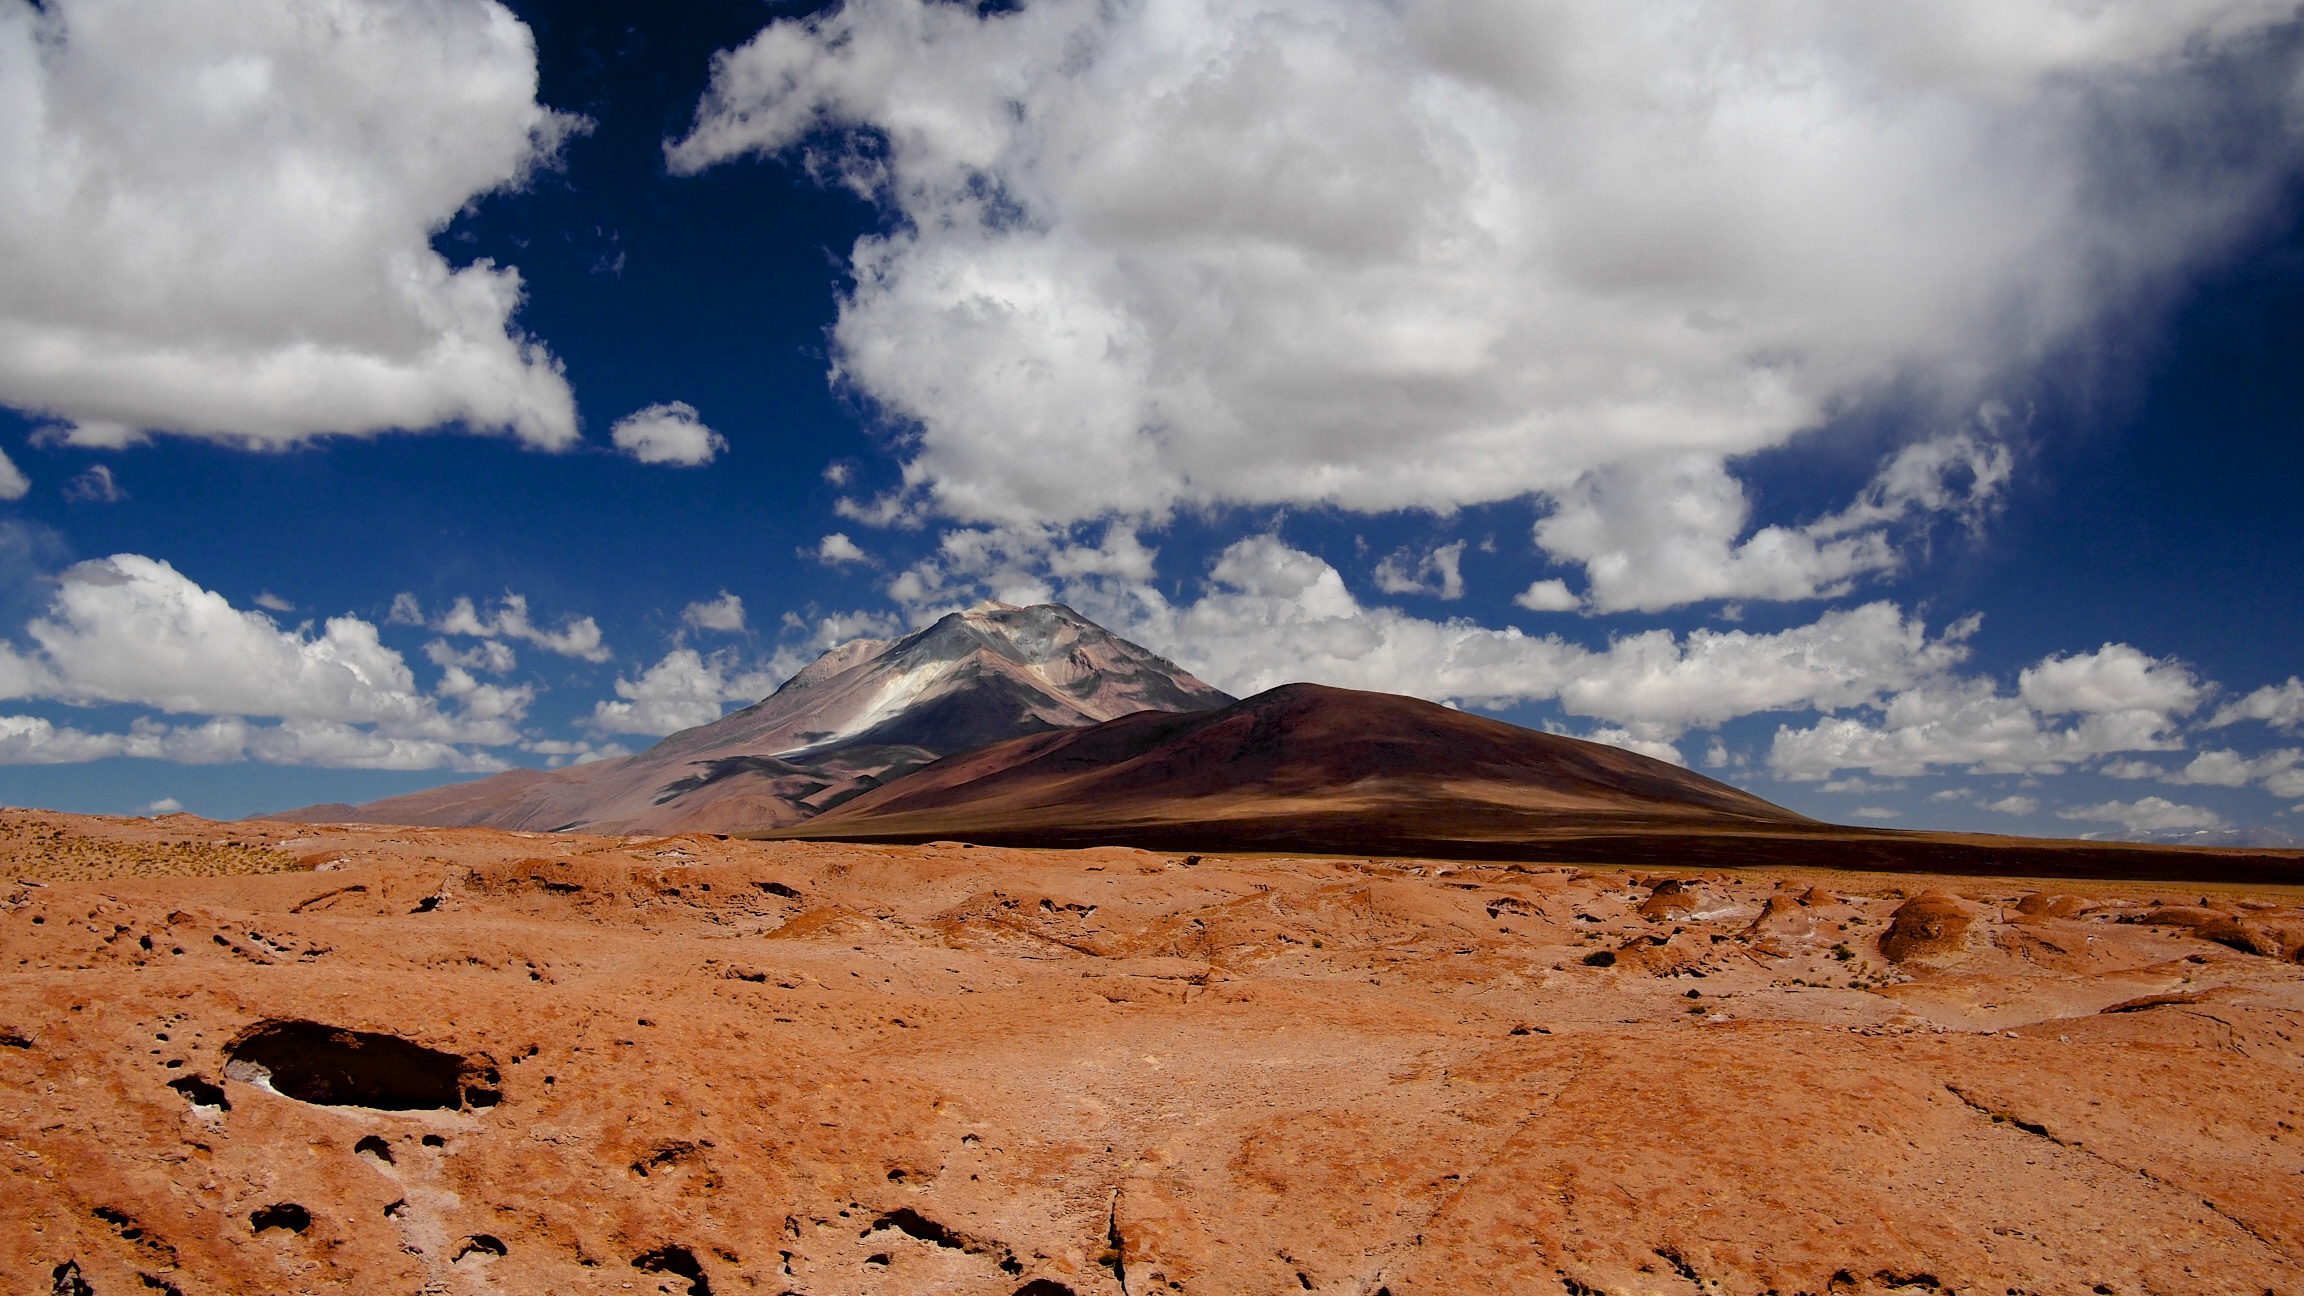 Ollague Volcano in Northern Chile, on the border with Bolivia